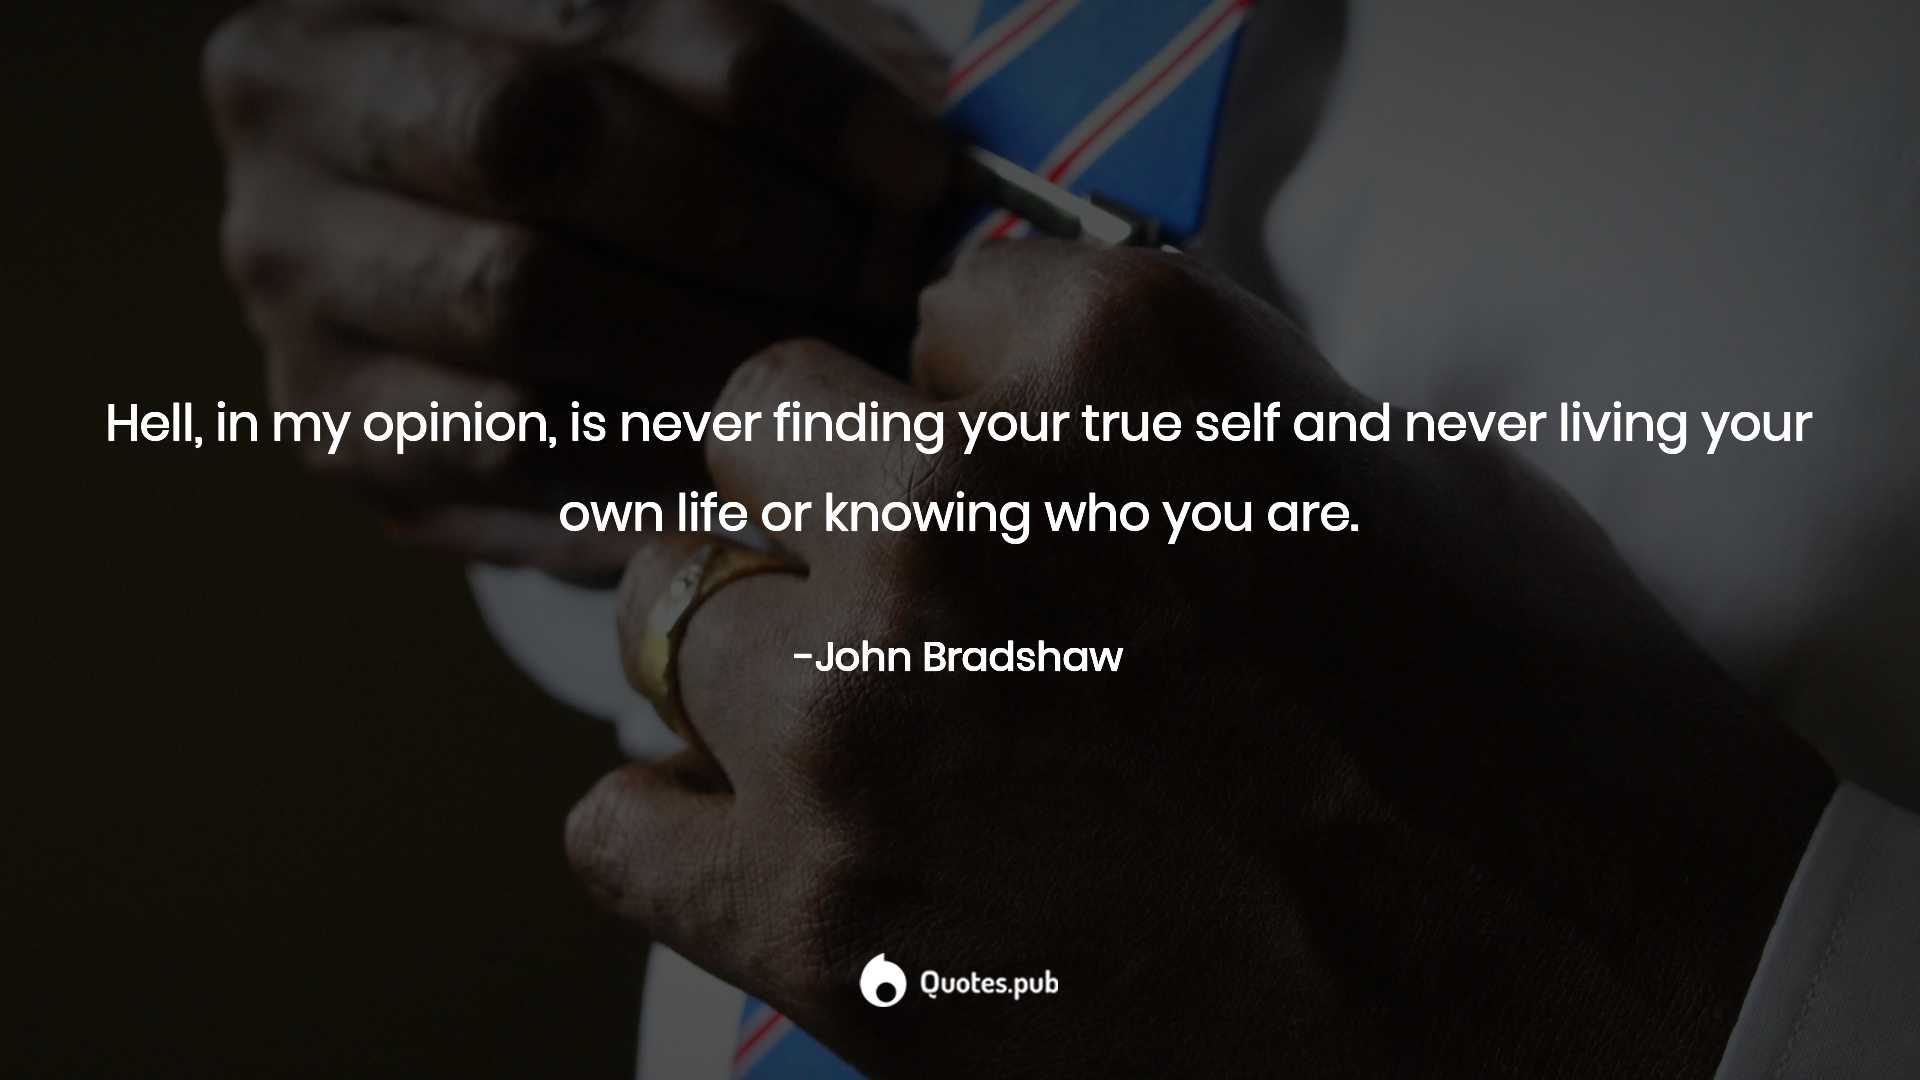 237 John Bradshaw Quotes On Consciousness Abandonment And Healing The Shame That Binds You Quotes Pub